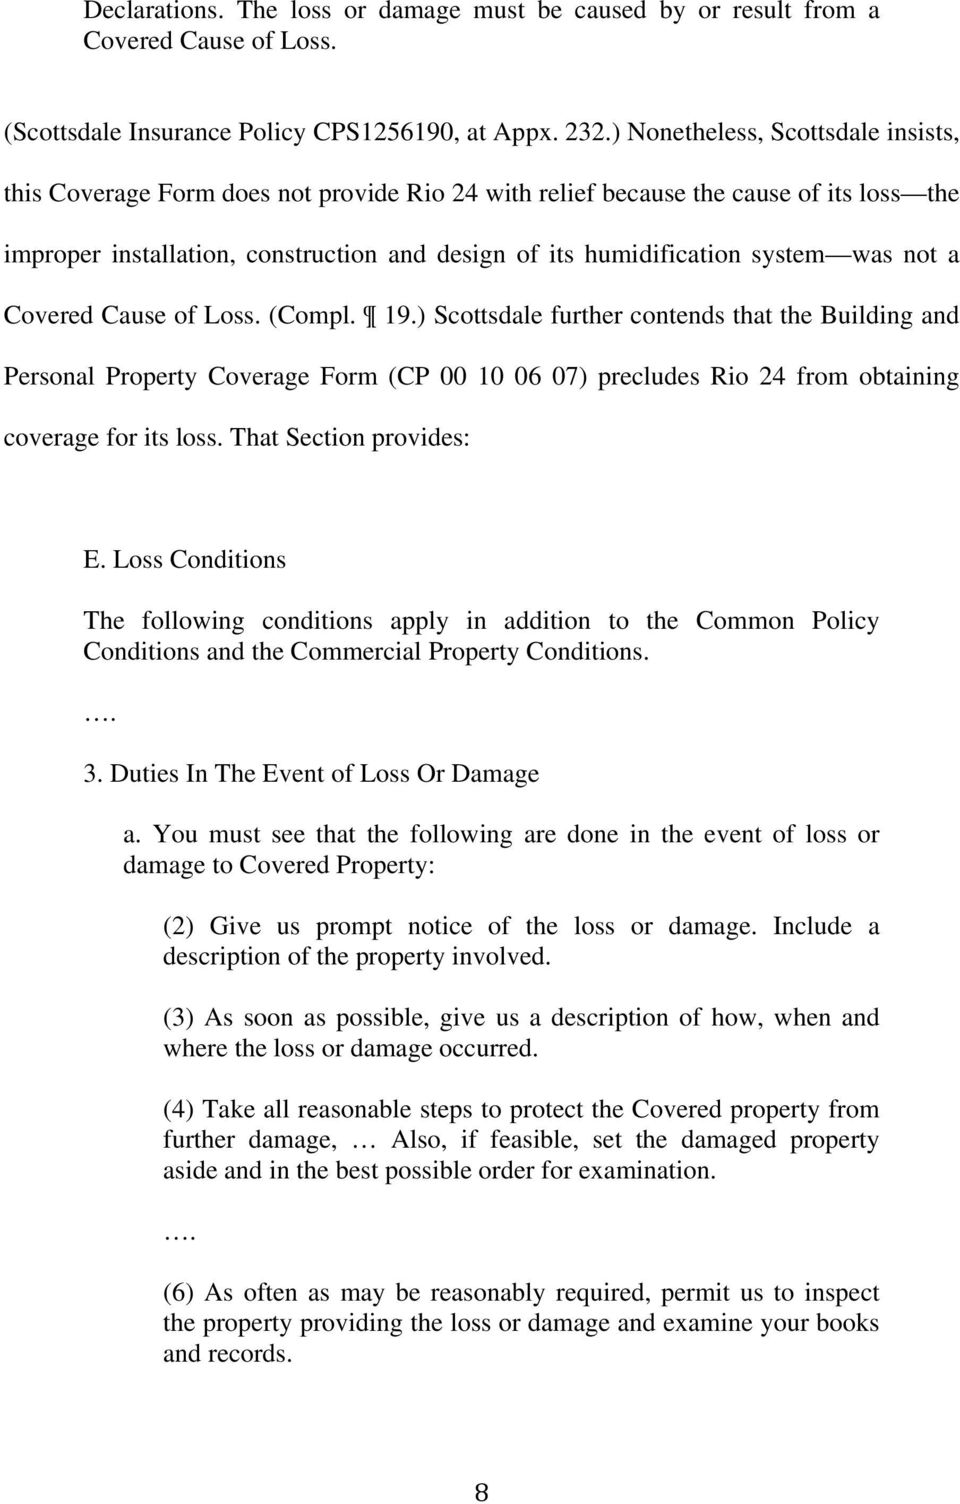 was not a Covered Cause of Loss. (Compl. 19.) Scottsdale further contends that the Building and Personal Property Coverage Form (CP 00 10 06 07) precludes Rio 24 from obtaining coverage for its loss.